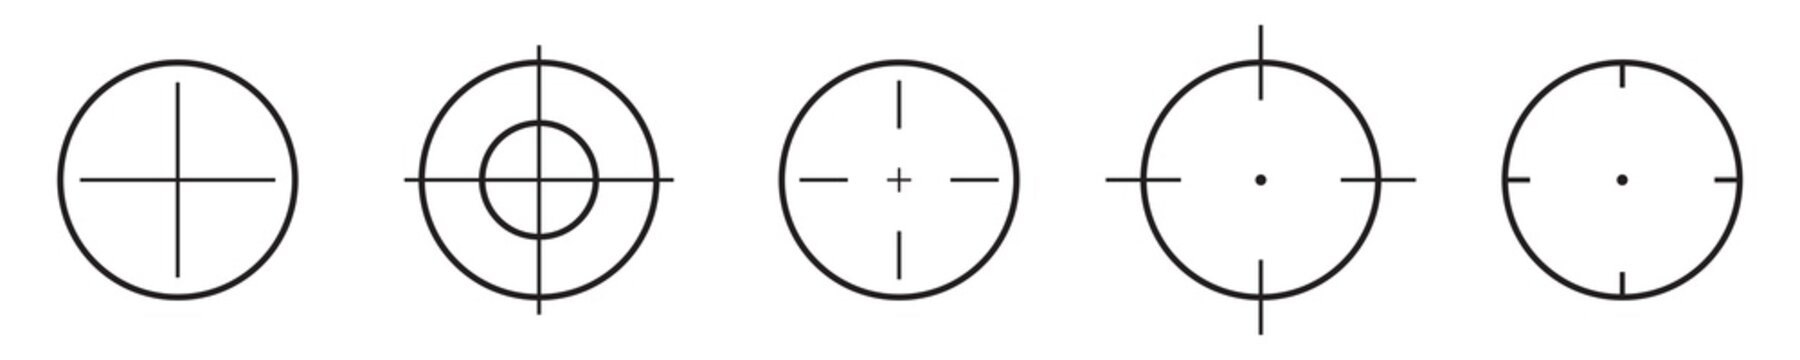 Different target icon set. Different aim icons. Target set. Bullsey sign set. Vector graphic.